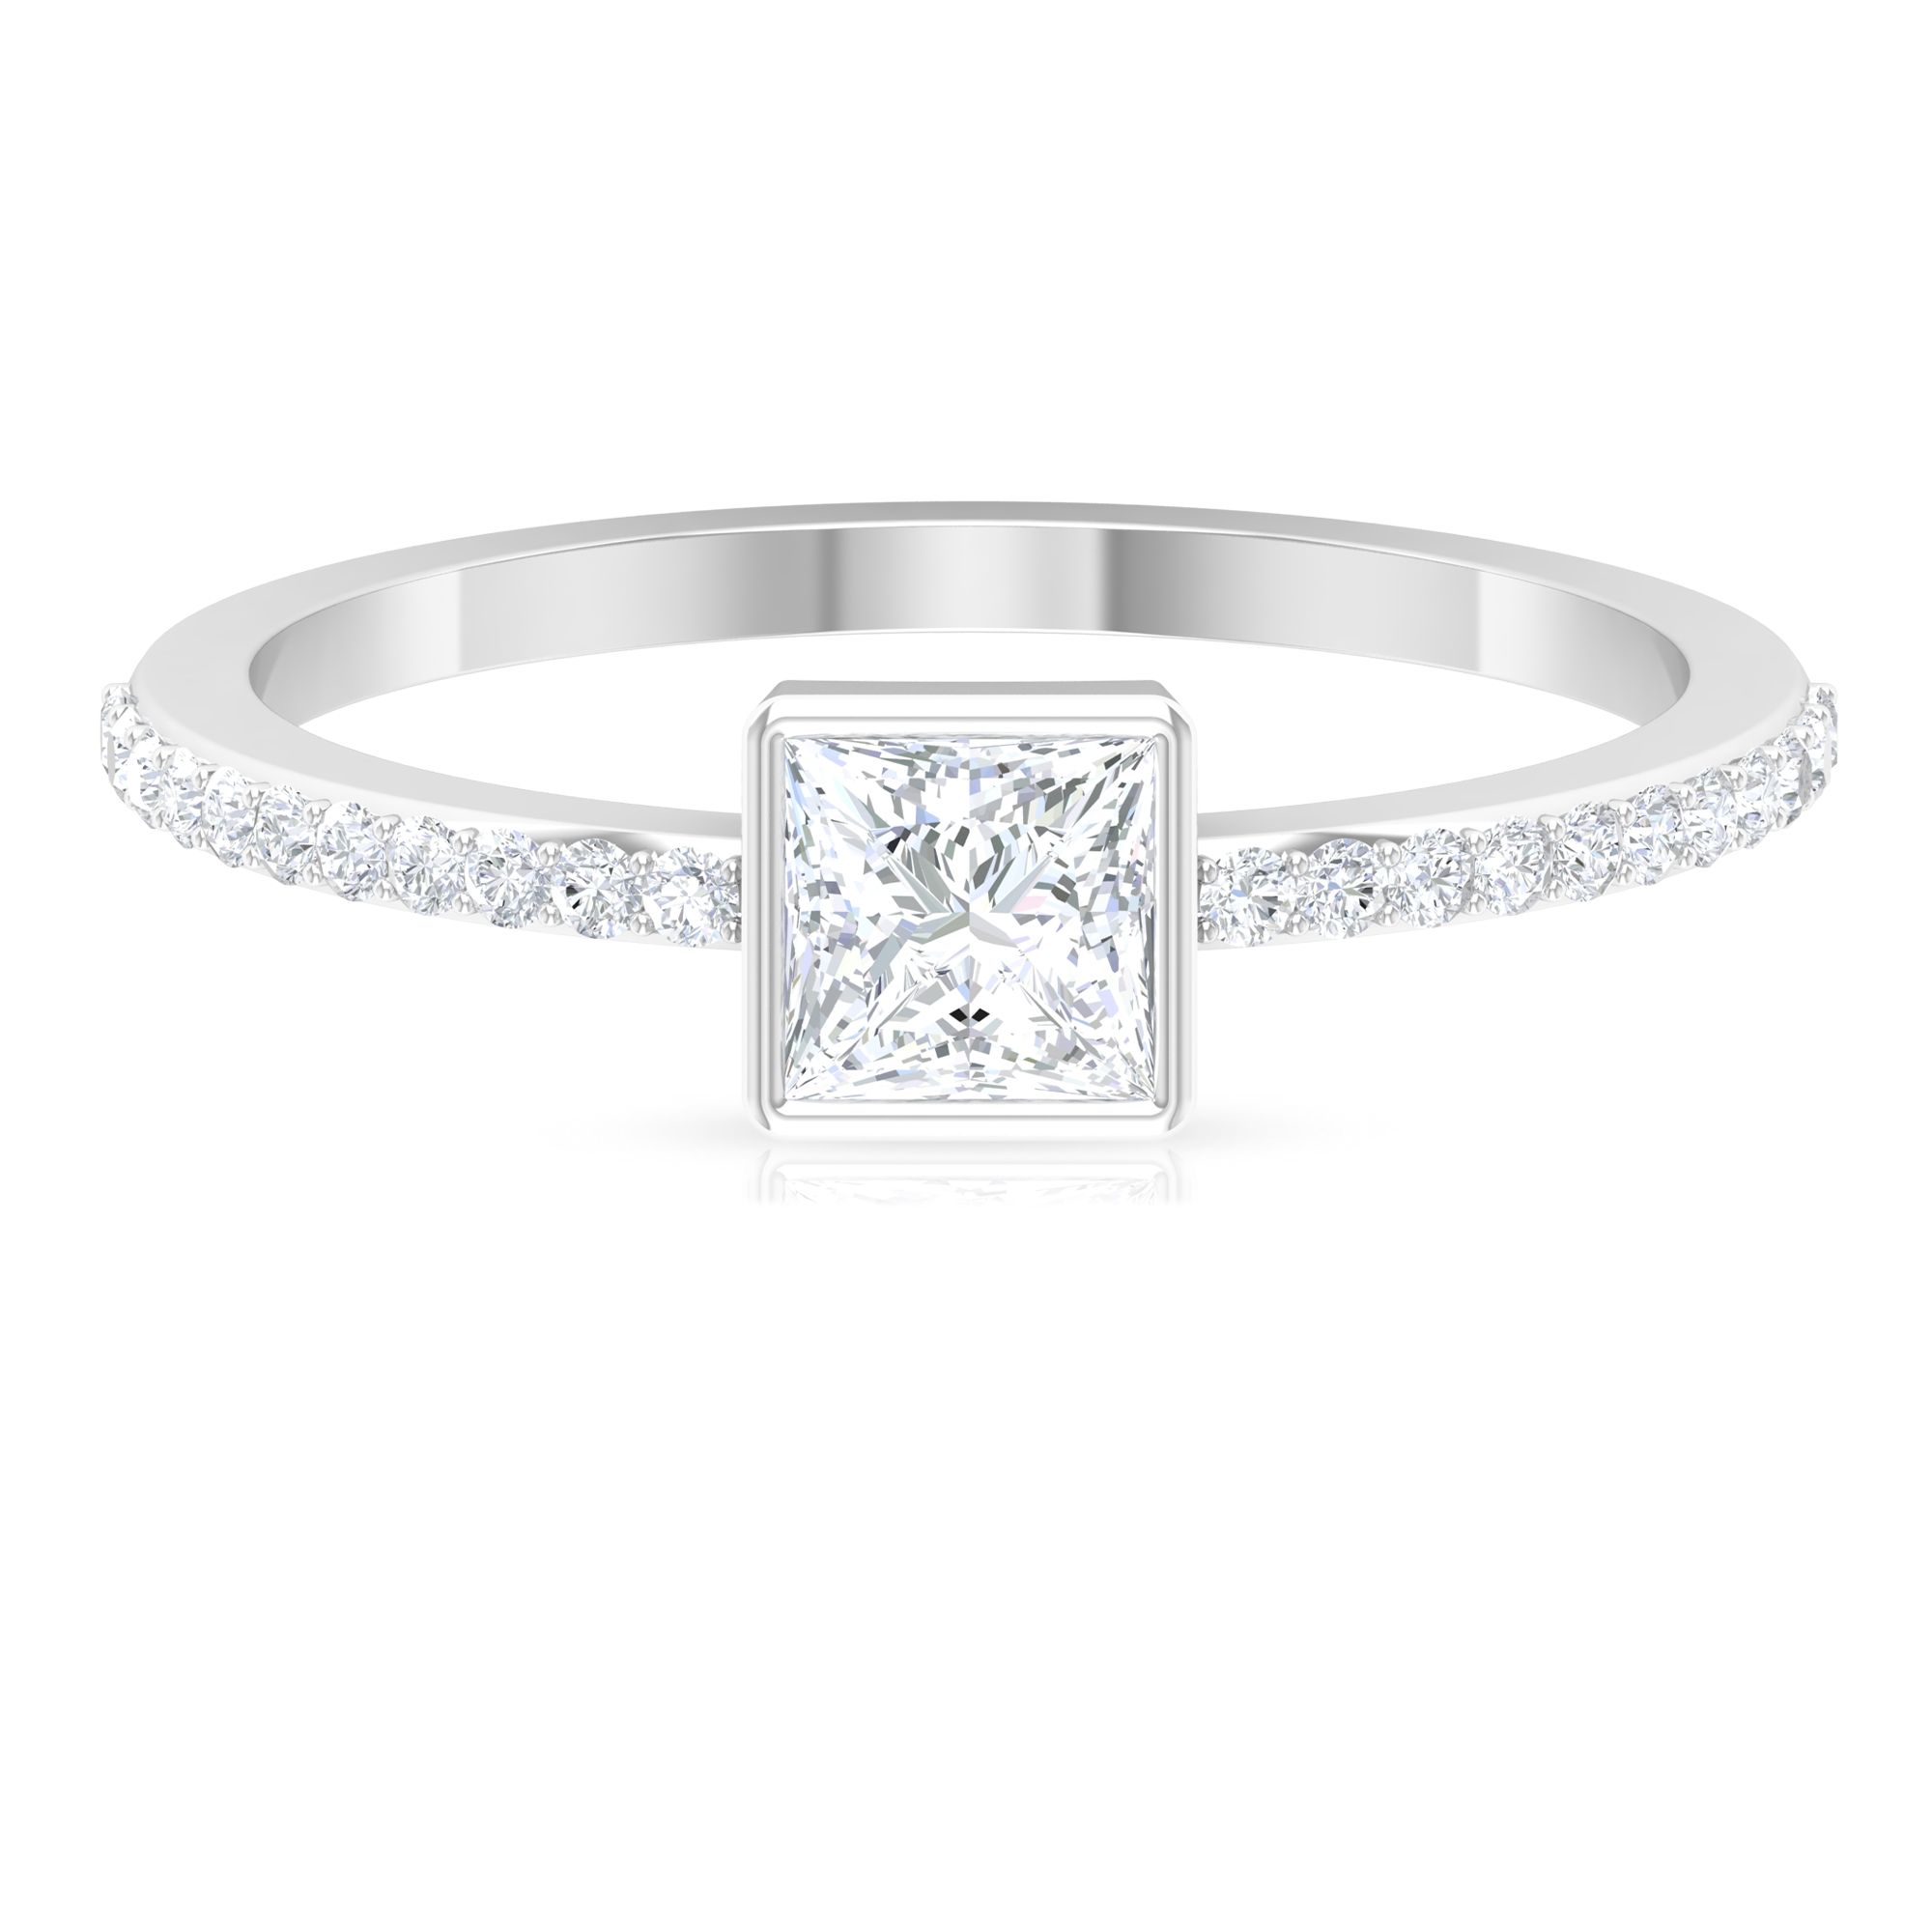 3/4 CT Diamond Solitaire Ring in Bezel Setting with Surface Prong Set Diamond